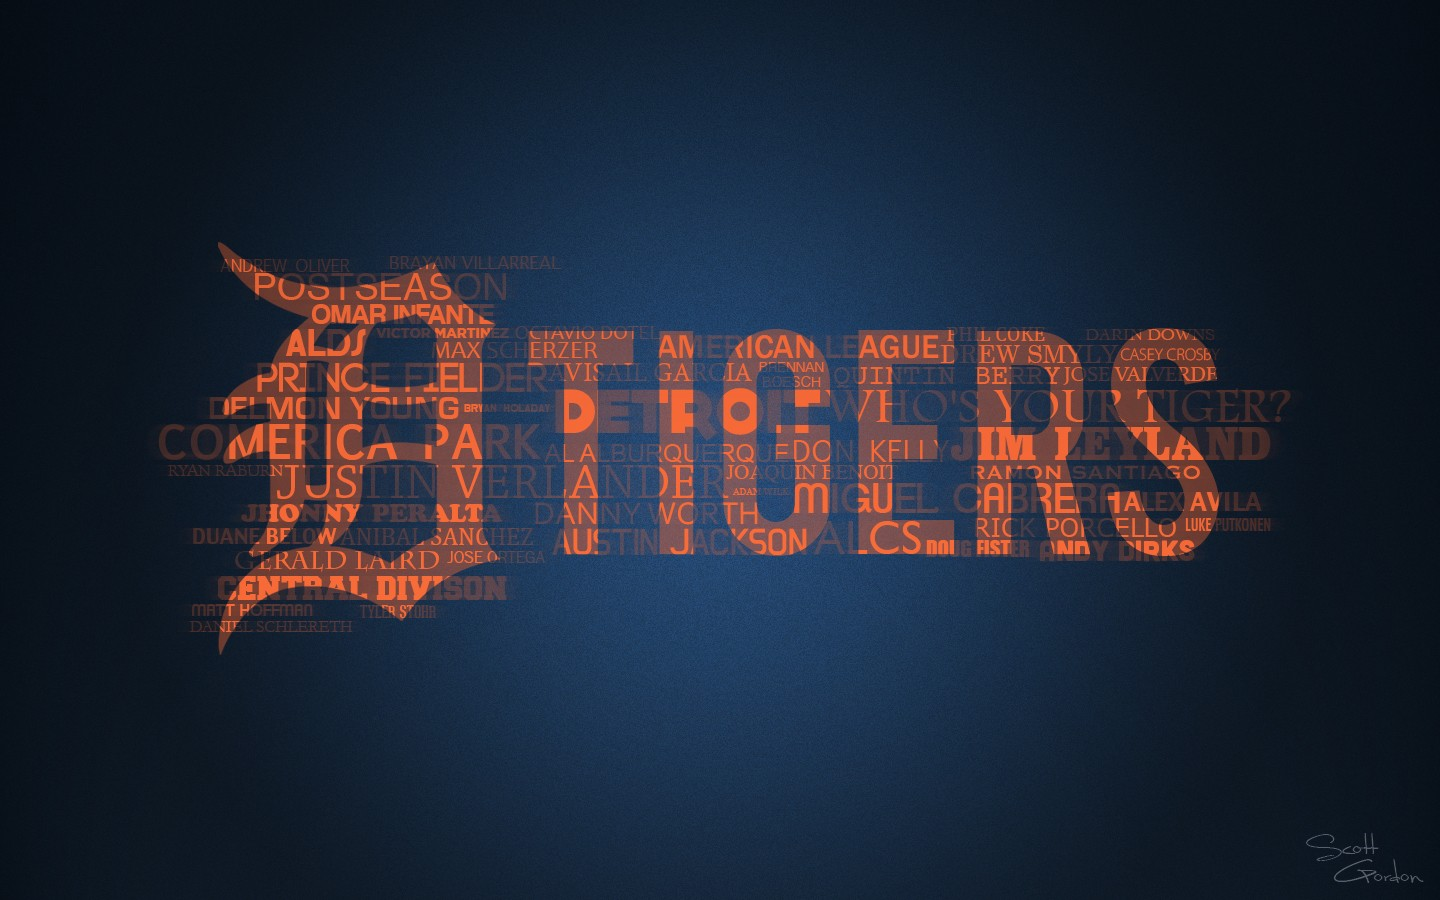 Grand Detroit Tigers Wallpaper Detroit Tigers Wallpaper Detroit Tigers Rumors Twitter Detroit Tigers Pr Twitter nice food Detroit Tigers Twitter